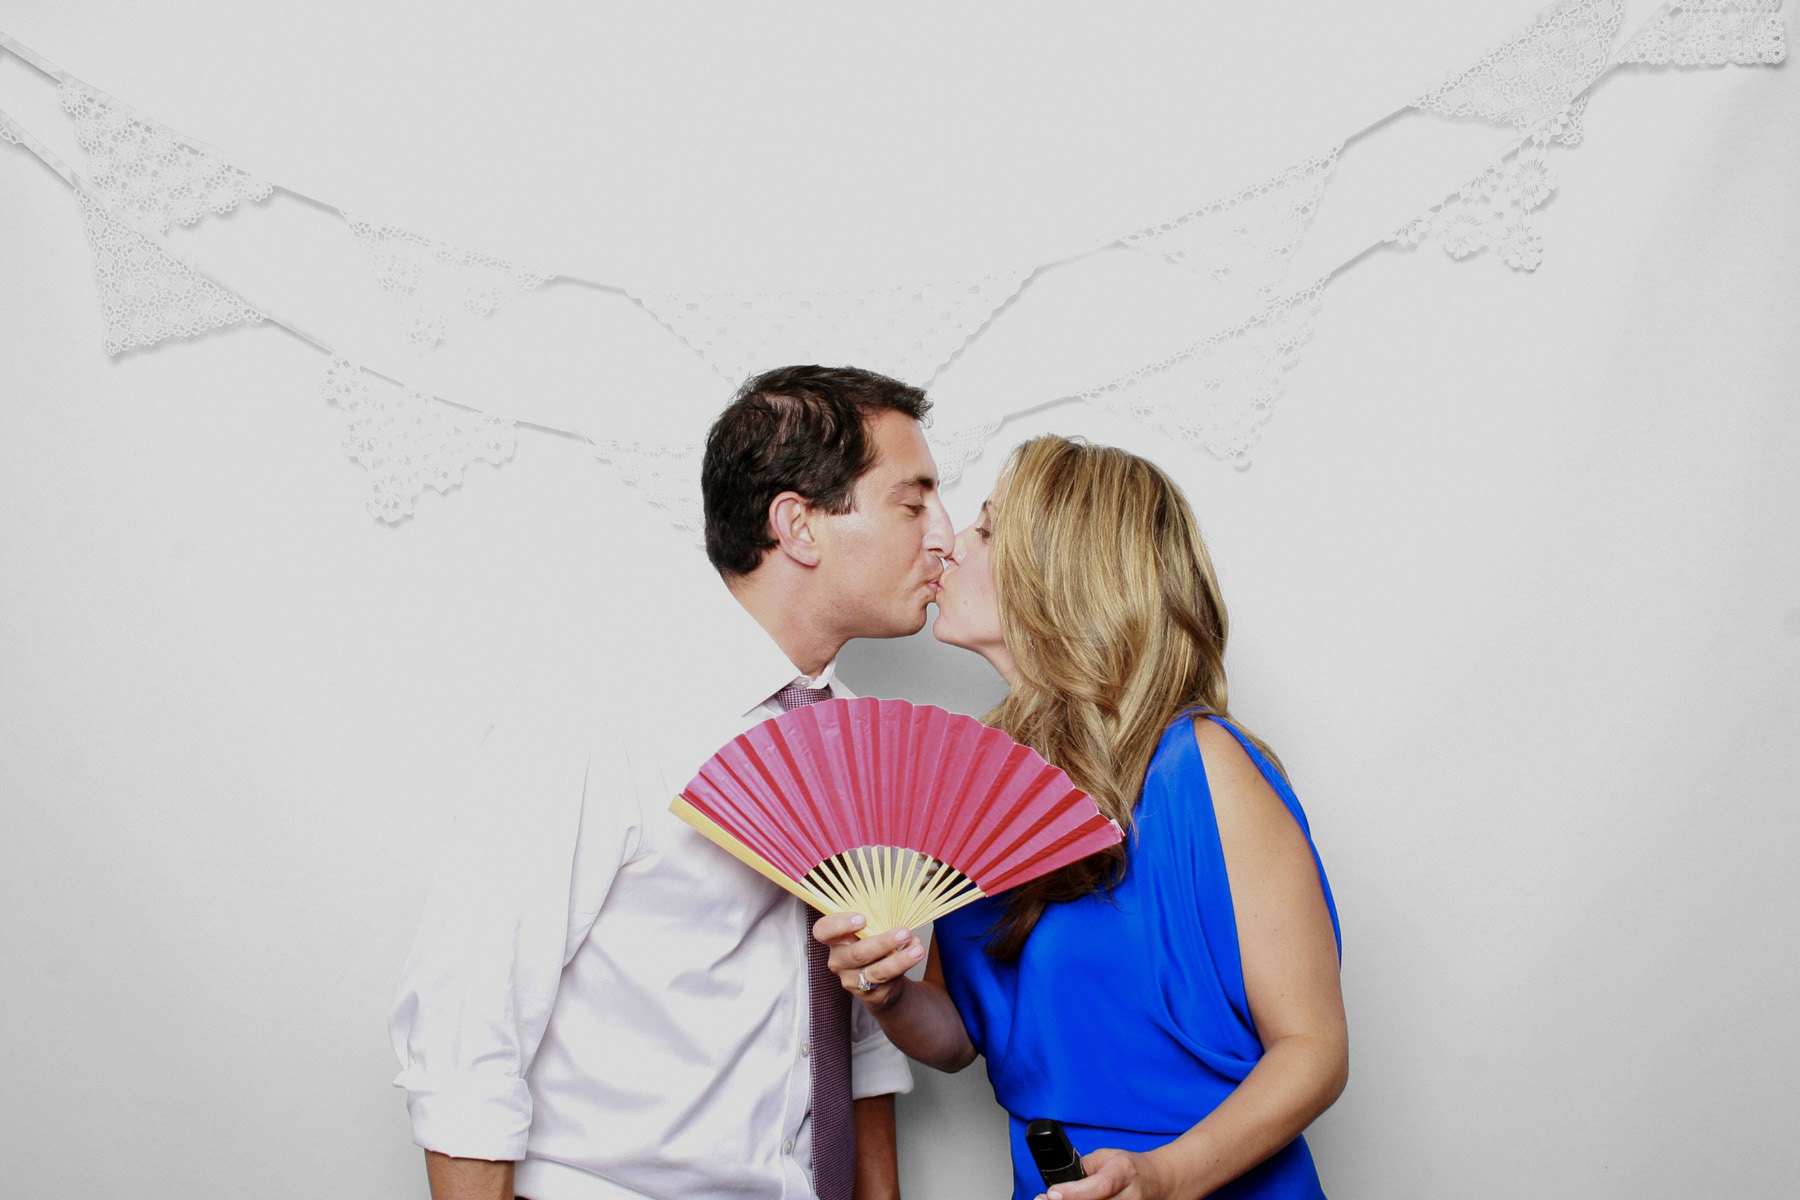 New York City Photo Booth Couple kissing with fan